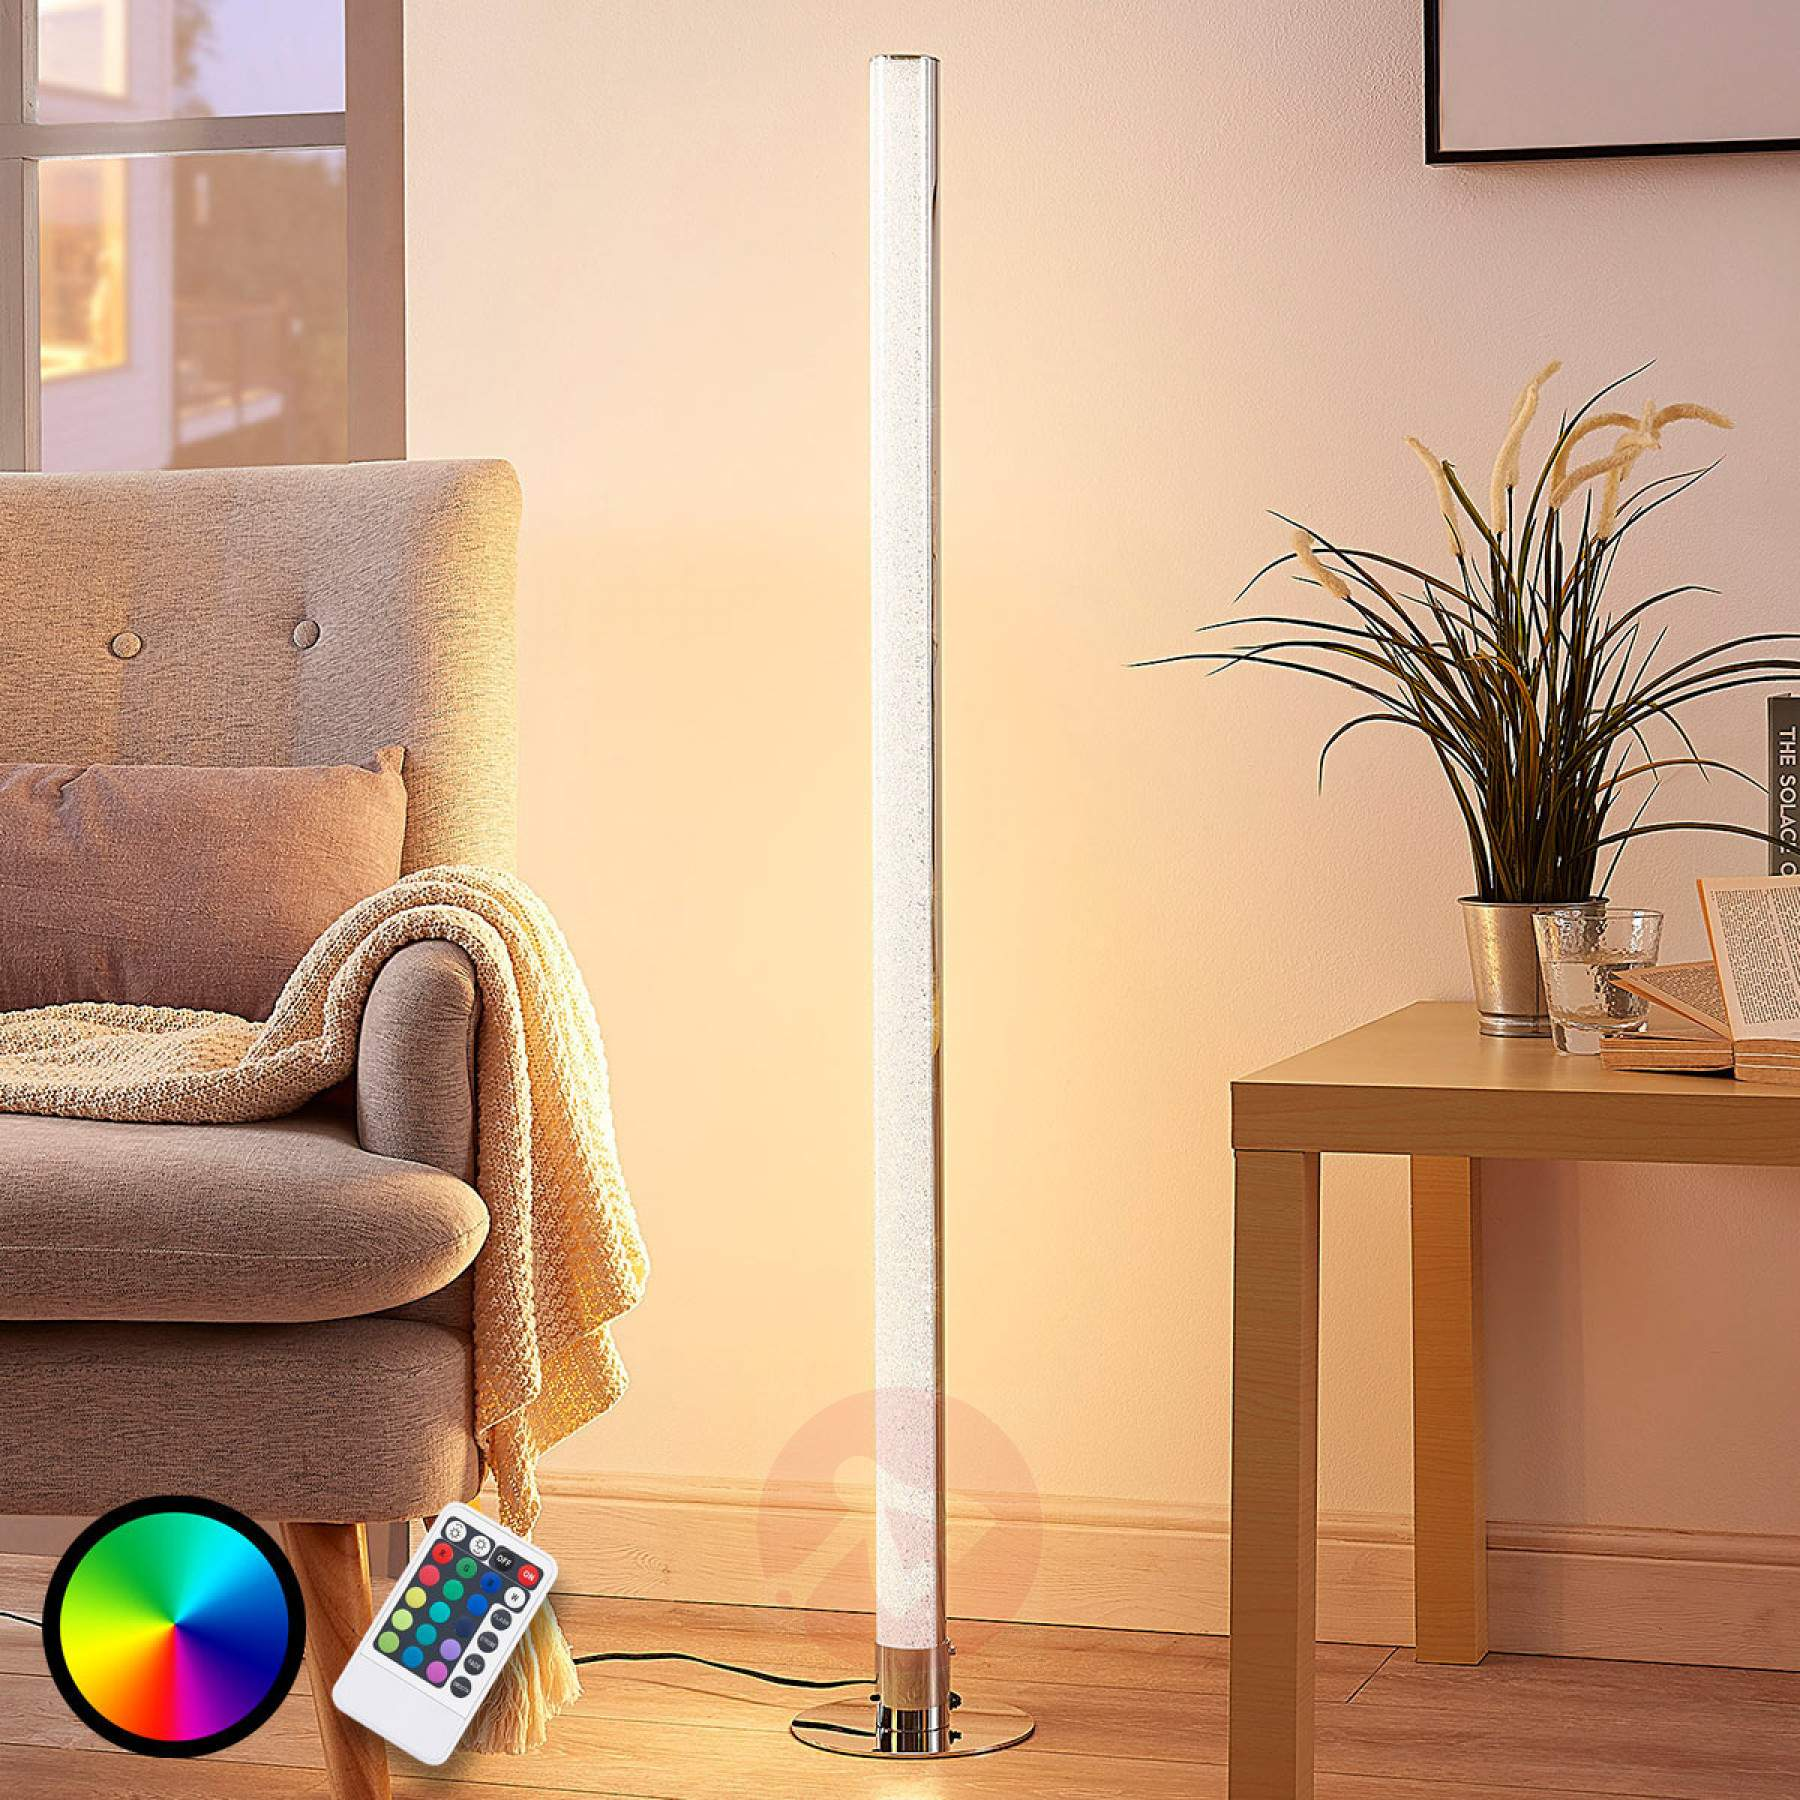 Full Size of Stehlampe Dimmbar Lngliche Led Rgb Hadis Wohnzimmer Schlafzimmer Stehlampen Wohnzimmer Stehlampe Dimmbar